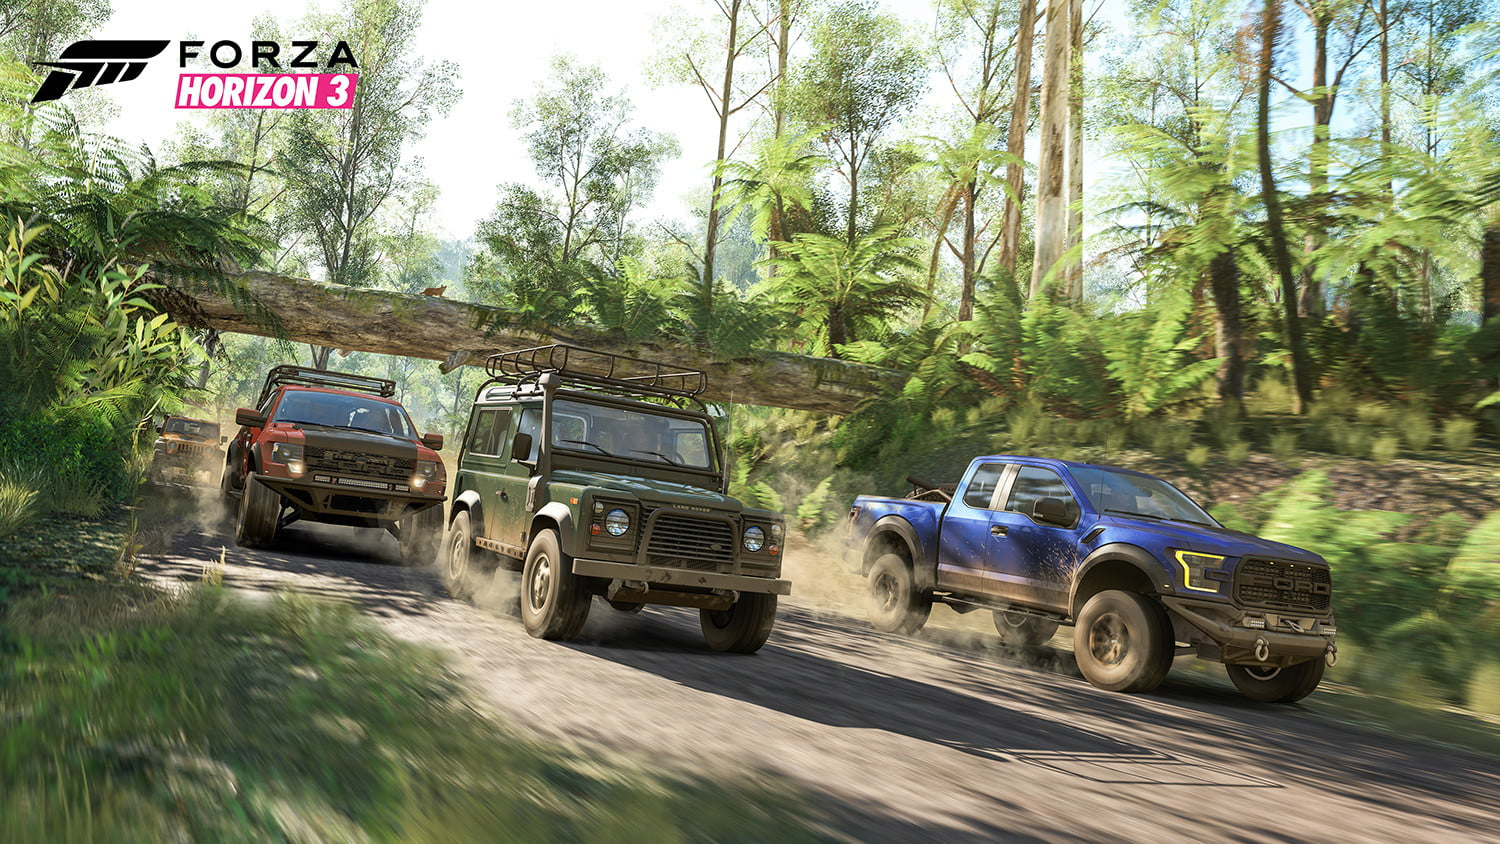 Image result for forza horizon 3 coop campaign